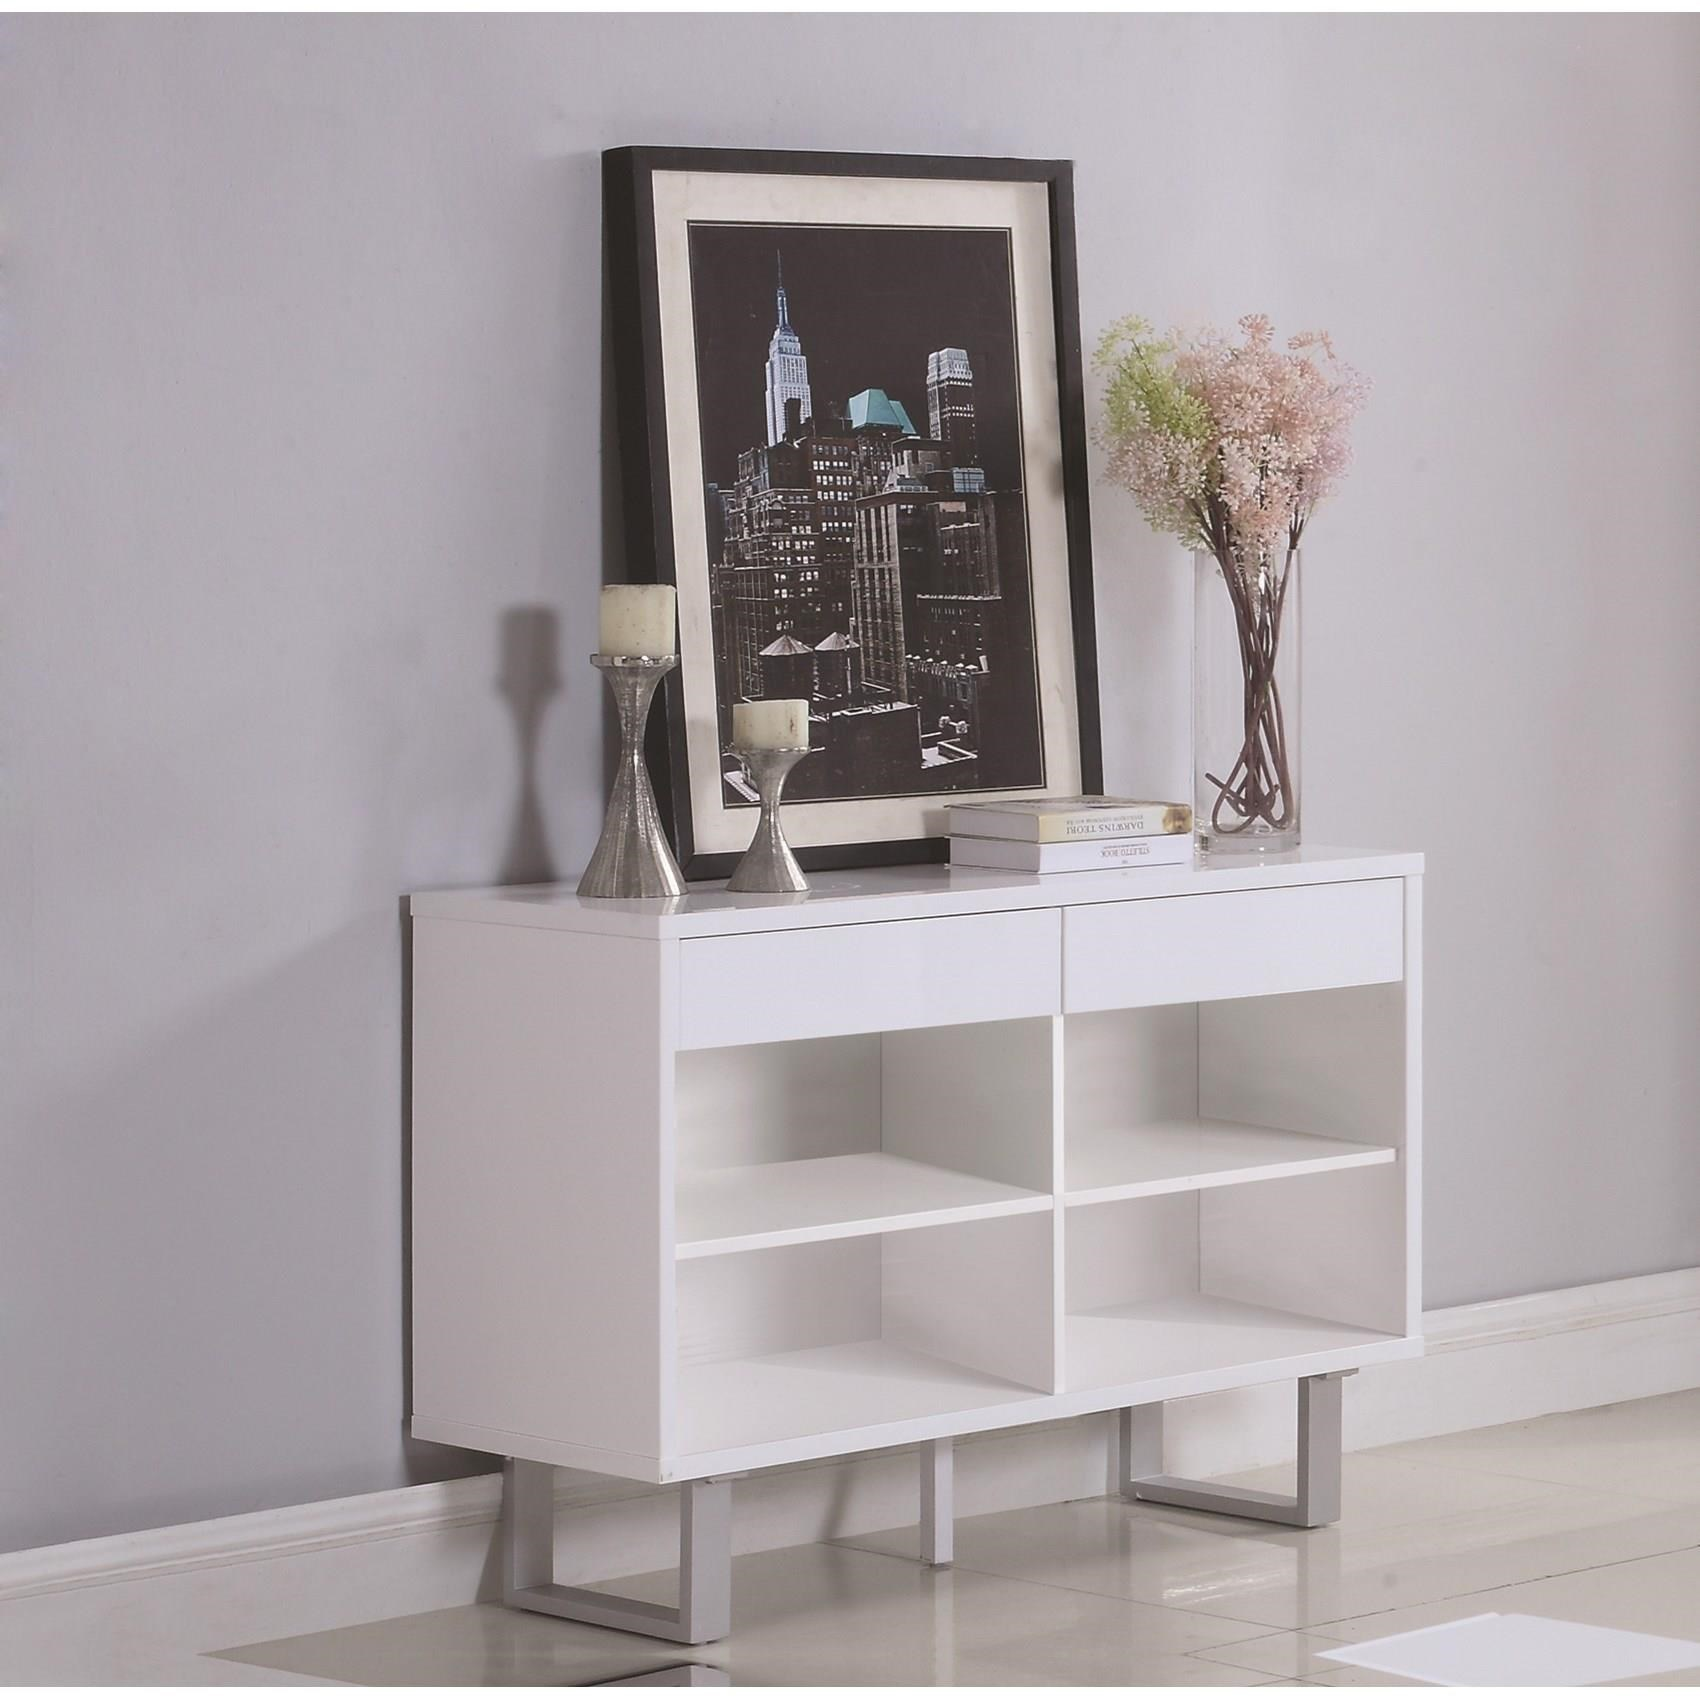 705699 sofa table with drawers and shelves